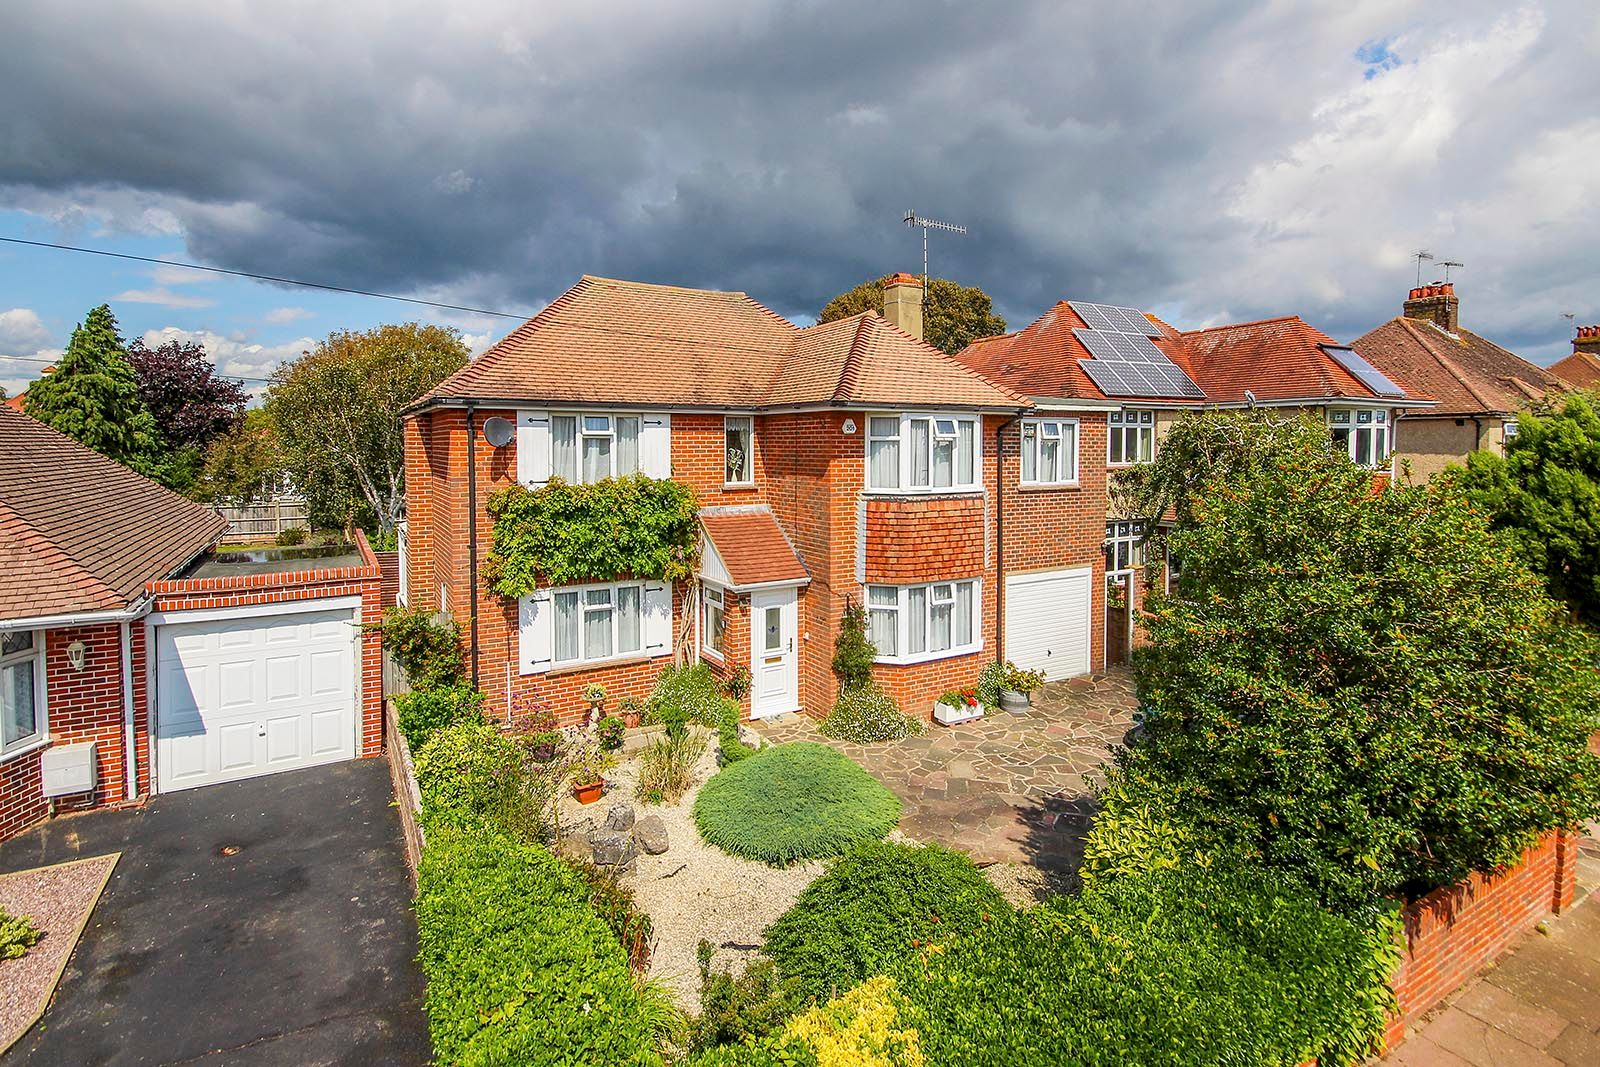 4 bed house for sale in Lavington Road - Property Image 1